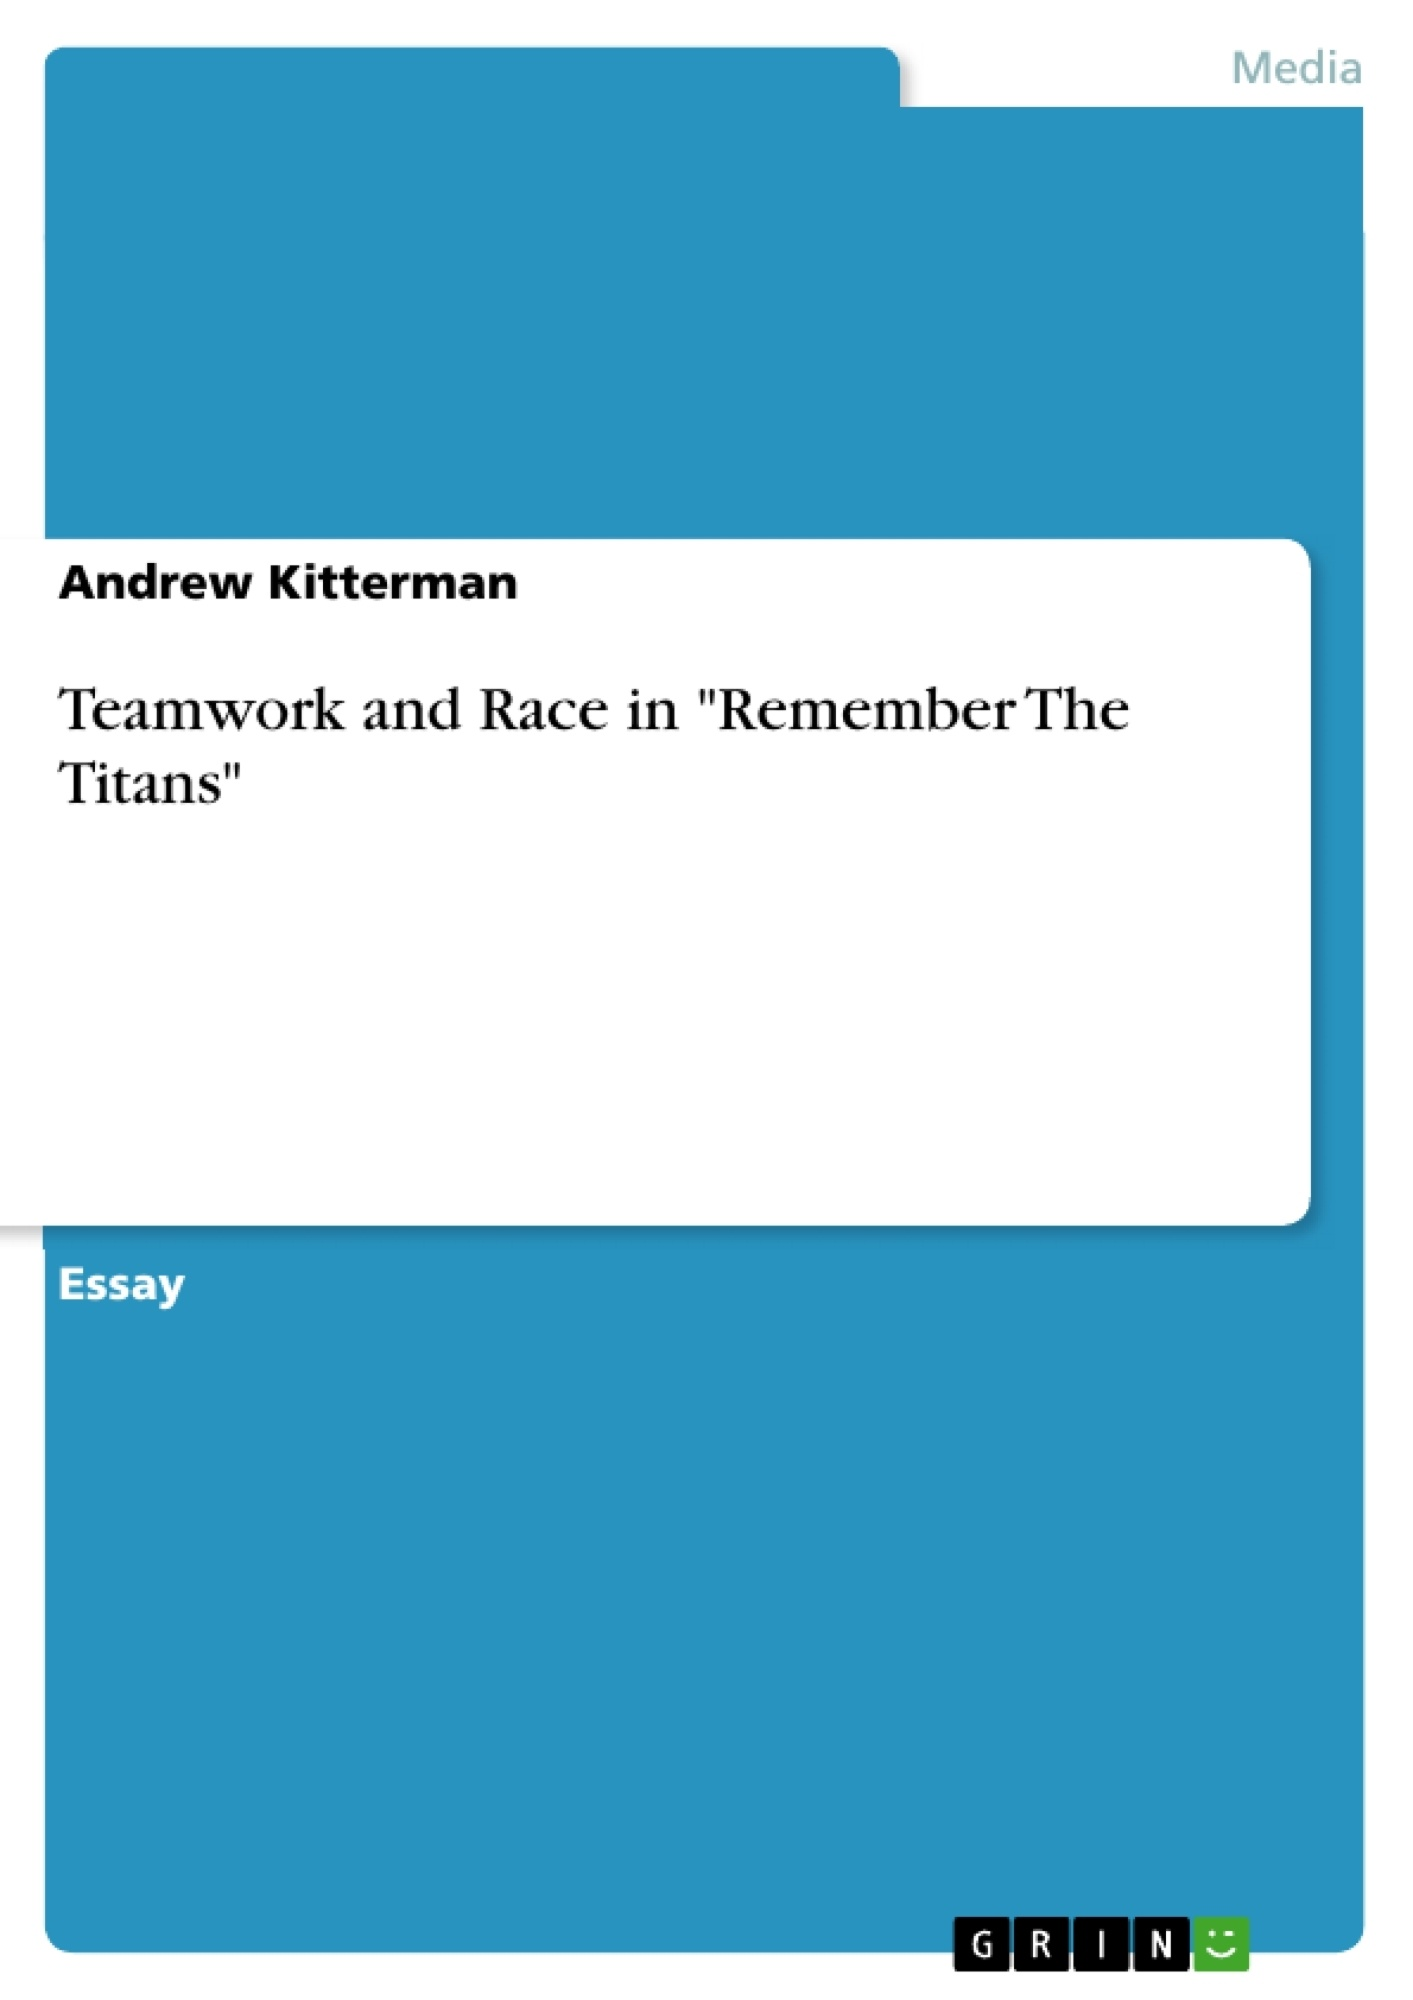 teamwork and race in remember the titans publish your master s teamwork and race in remember the titans publish your master s thesis bachelor s thesis essay or term paper